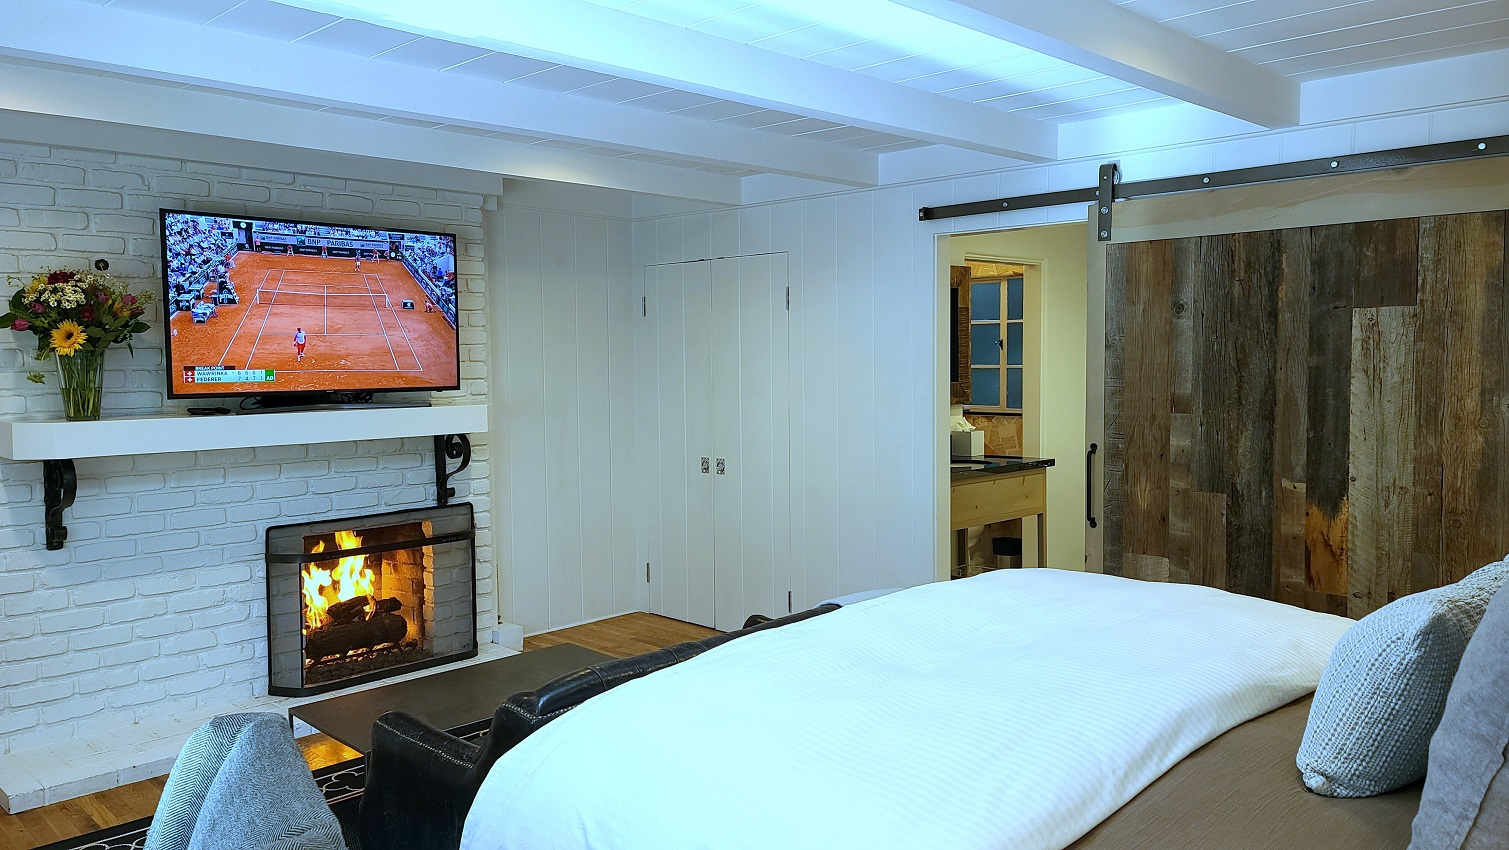 TV, Bed, Fireplace, and bathroom